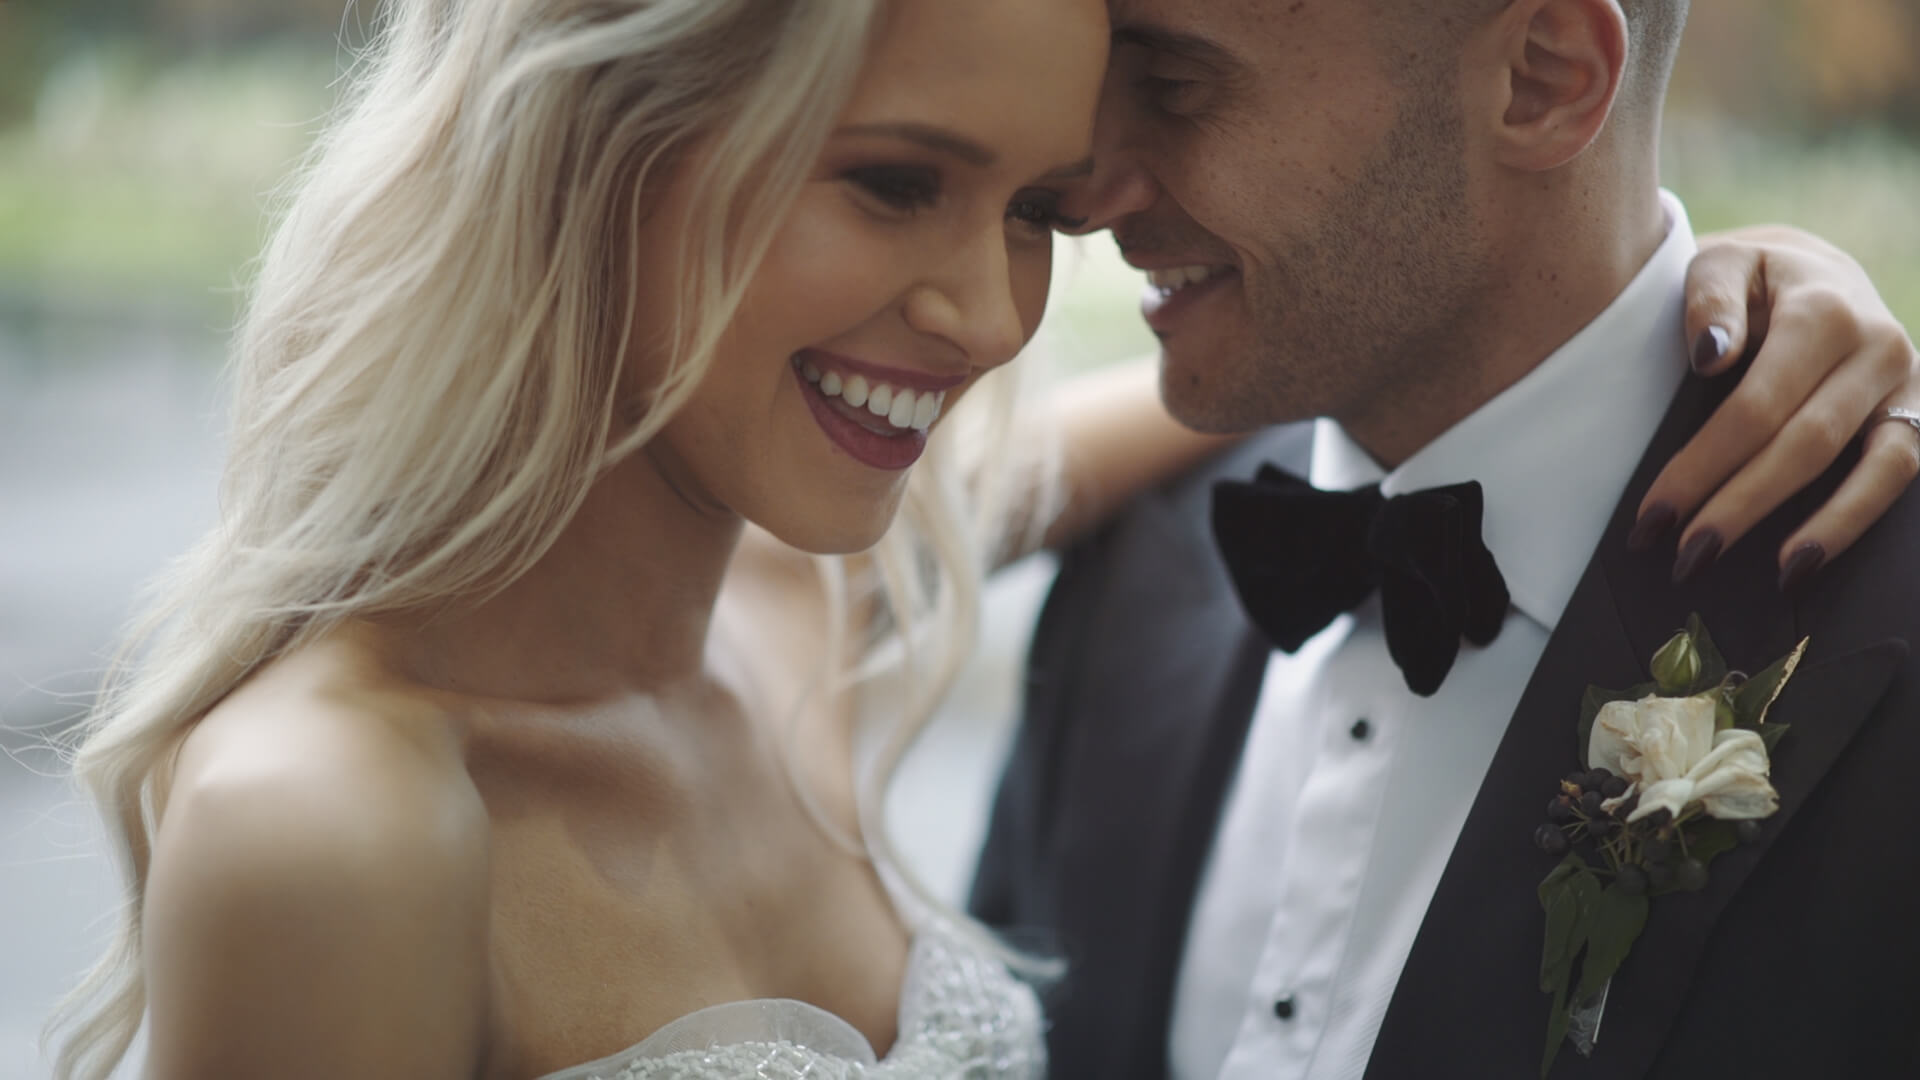 Wedding Video: What Kind Of Result Expected From Experts?